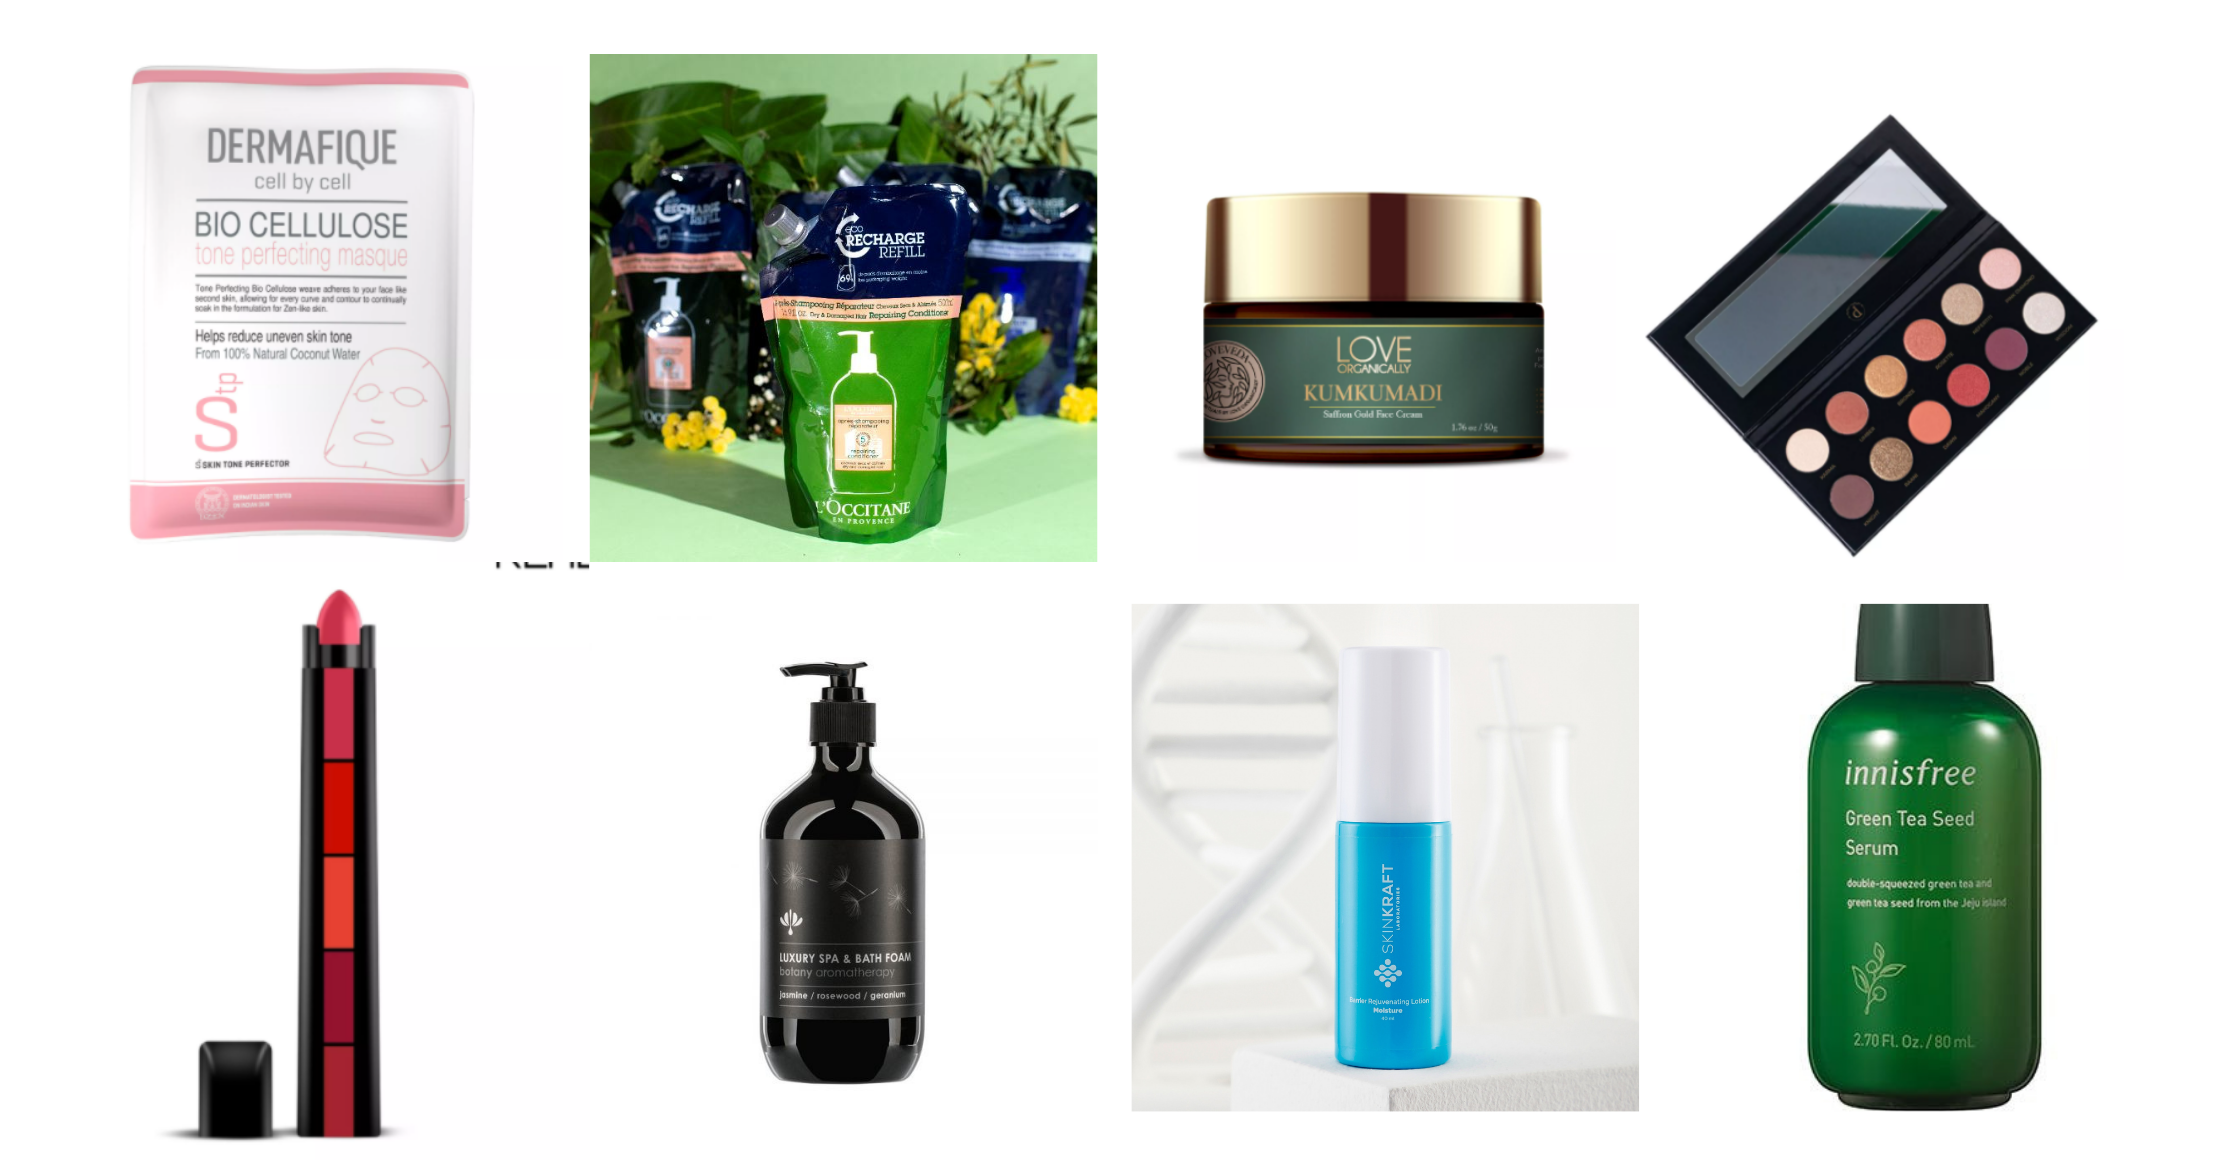 15 Sustainable Beauty Brands to Make Greener Beauty Choices